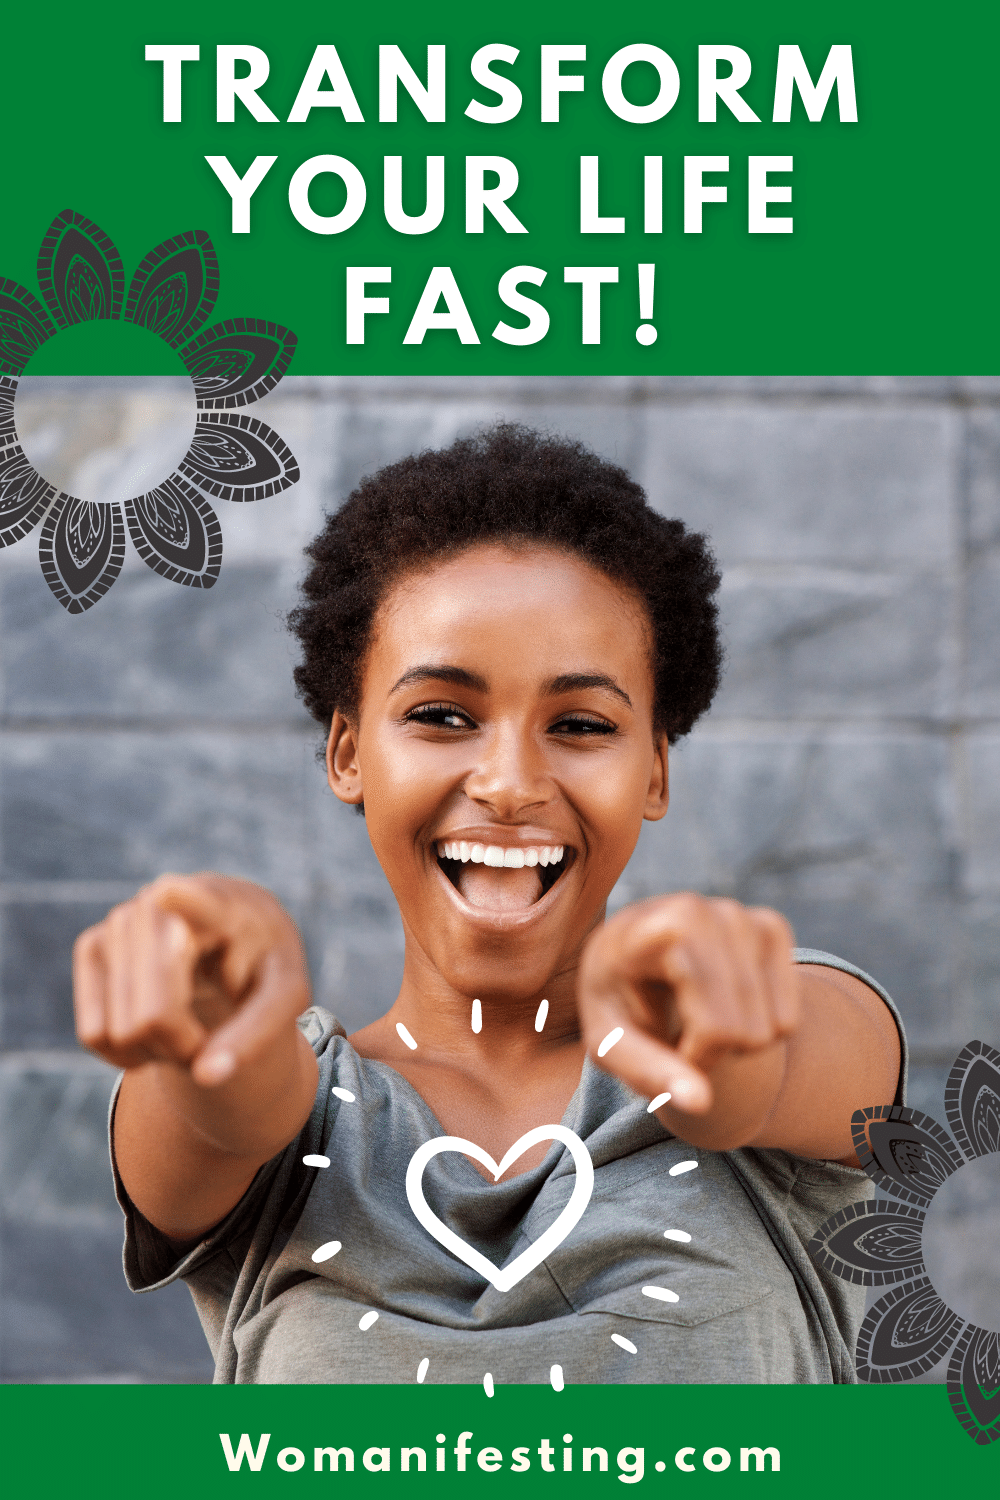 How to Transform Your Life Super Fast